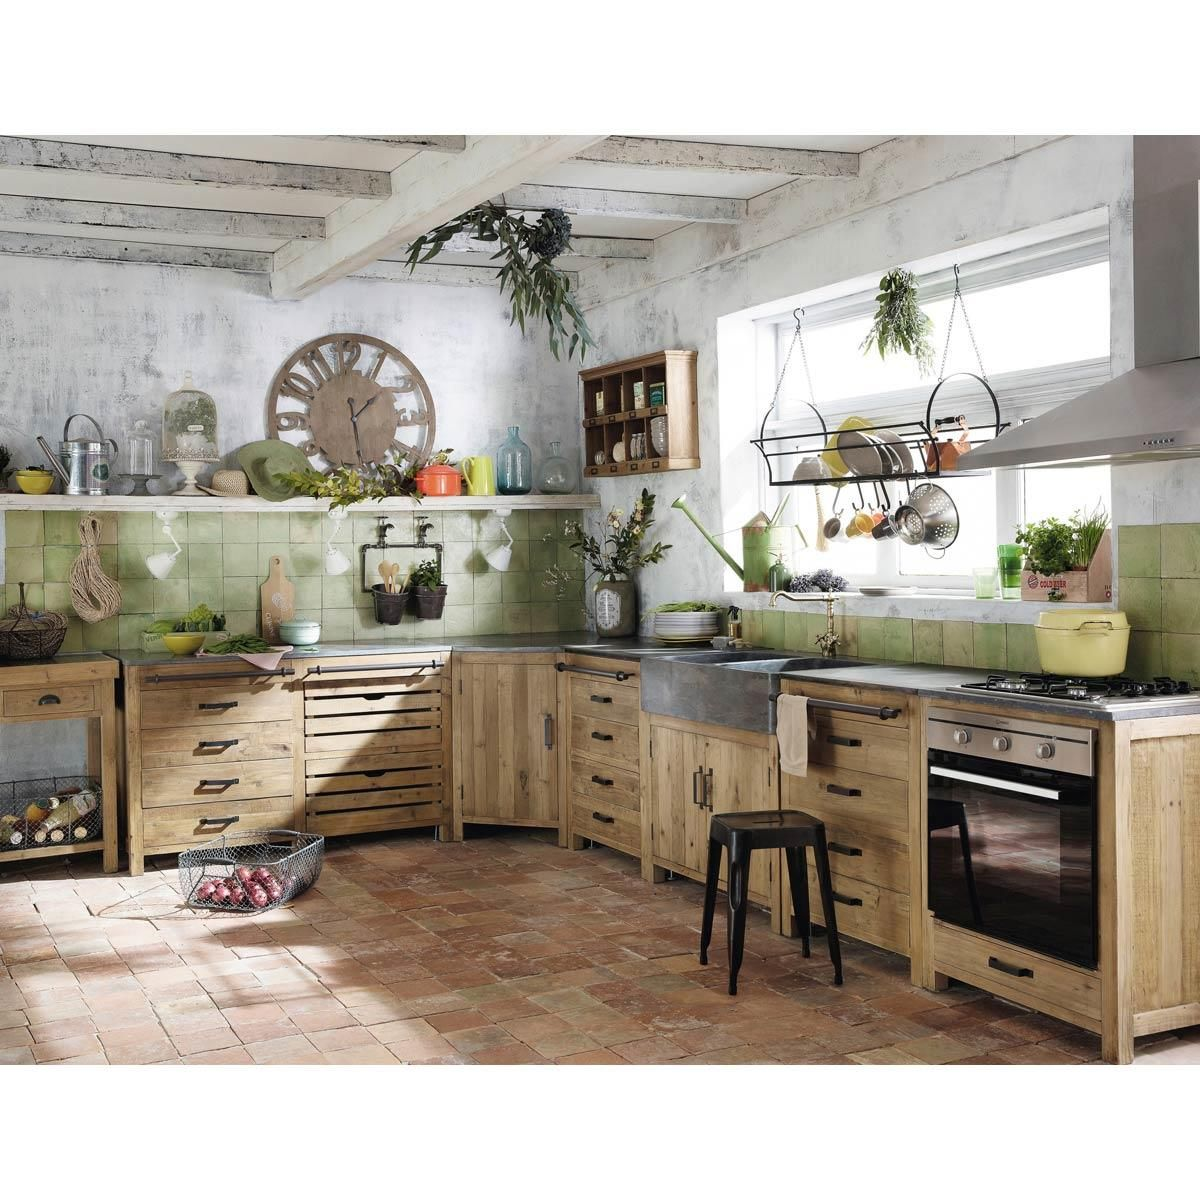 meuble bas de cuisine avec vier en bois recycl l 90 cm pagnol id es pour la maison. Black Bedroom Furniture Sets. Home Design Ideas